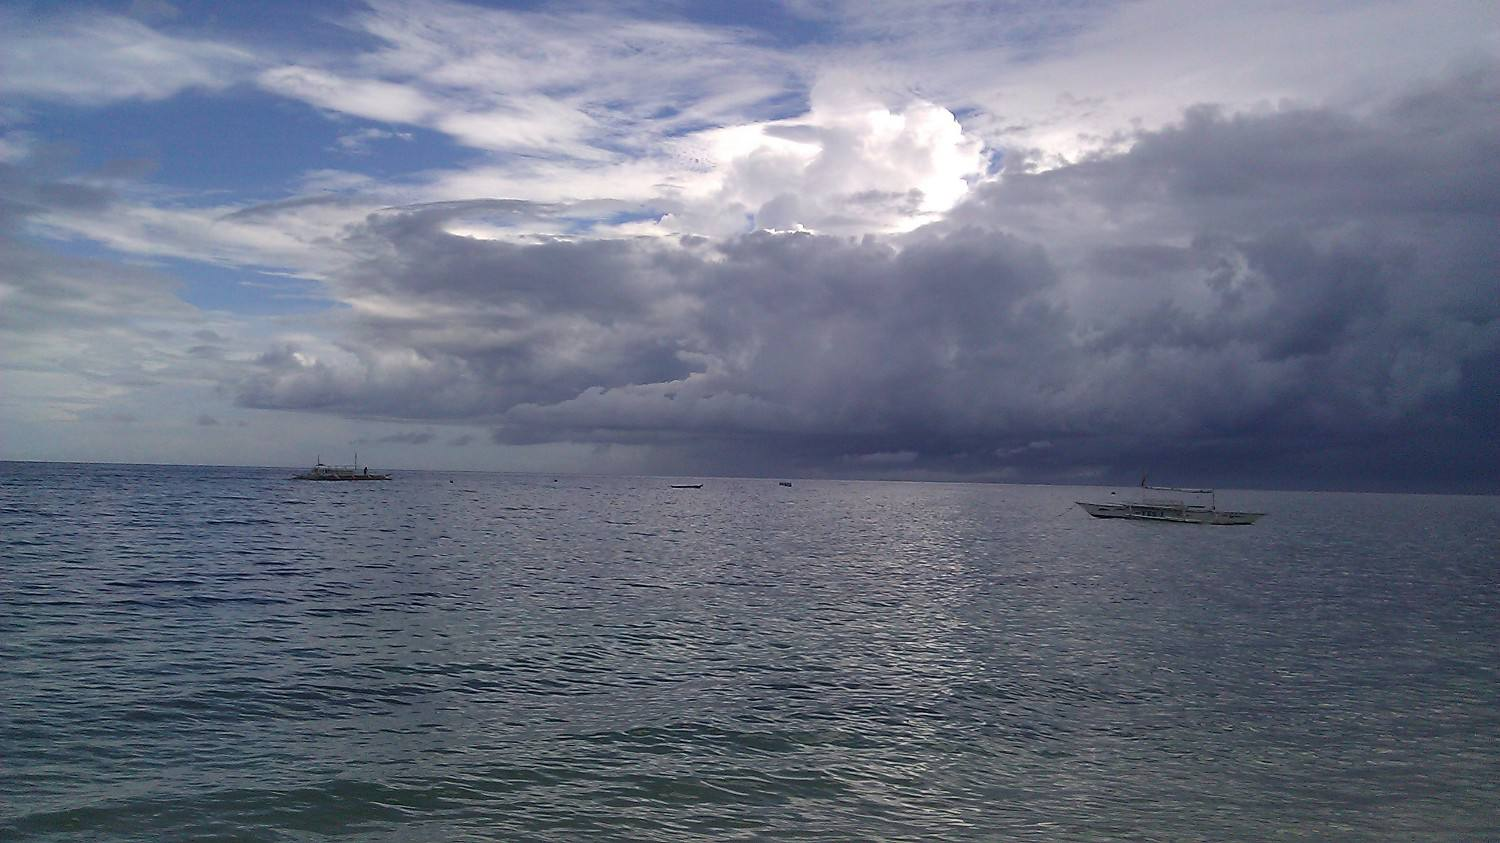 Stormy clouds above a small boat at sea